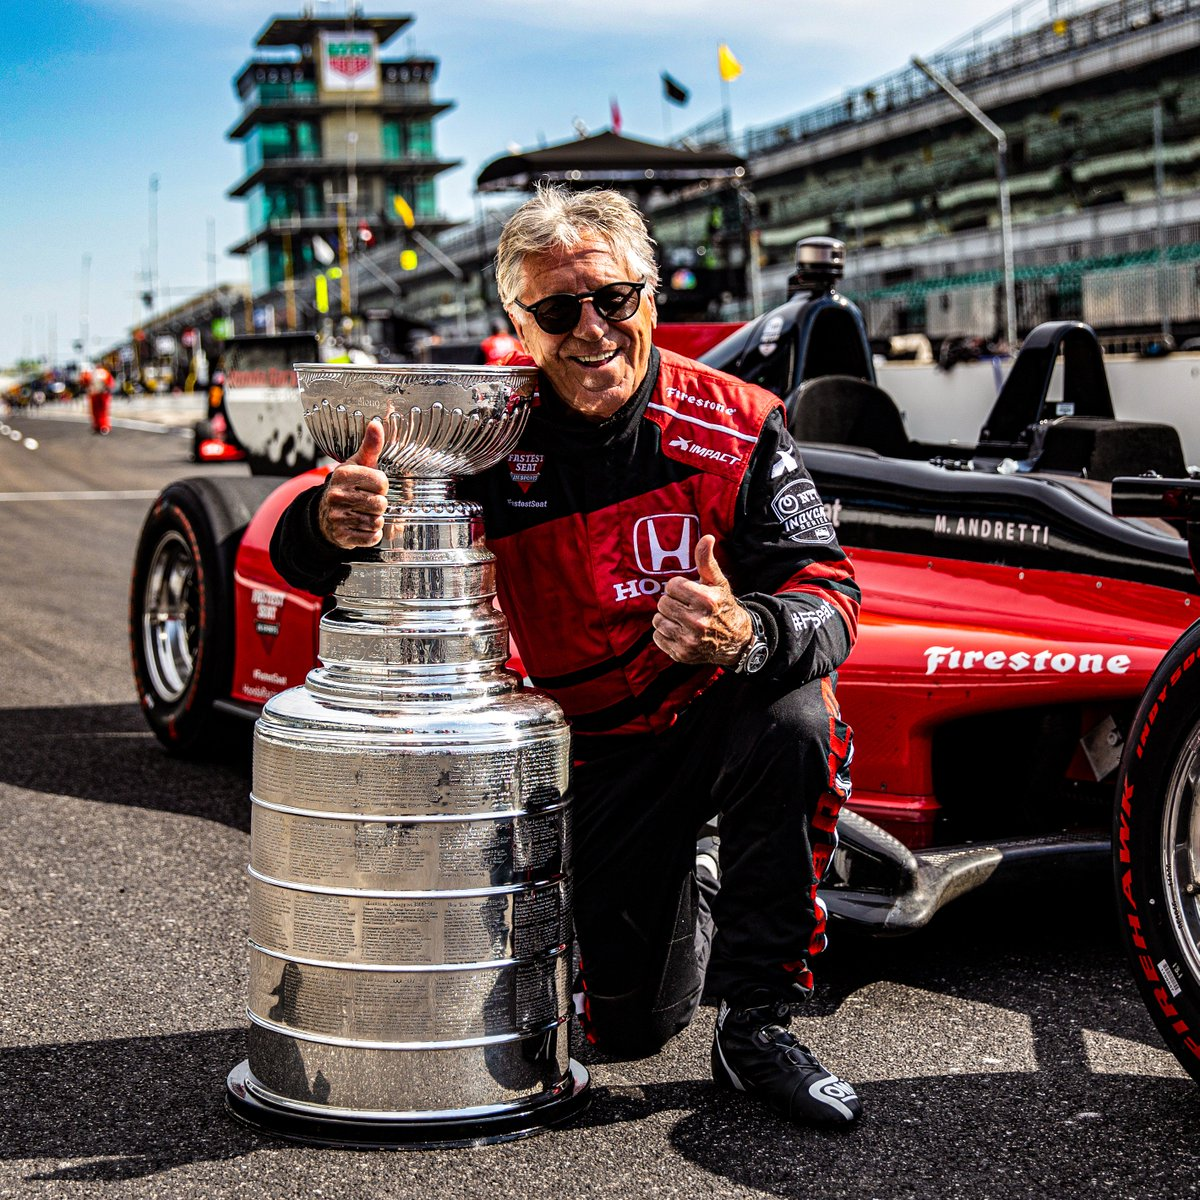 From the #Indy500, to the #StanleyCup.  Good luck to our friends at @NHLonNBCSports as the @StLouisBlues and @NHLBruins clash in Game 1 of the Final tonight on @NBC!  @IndyCar // @MarioAndretti